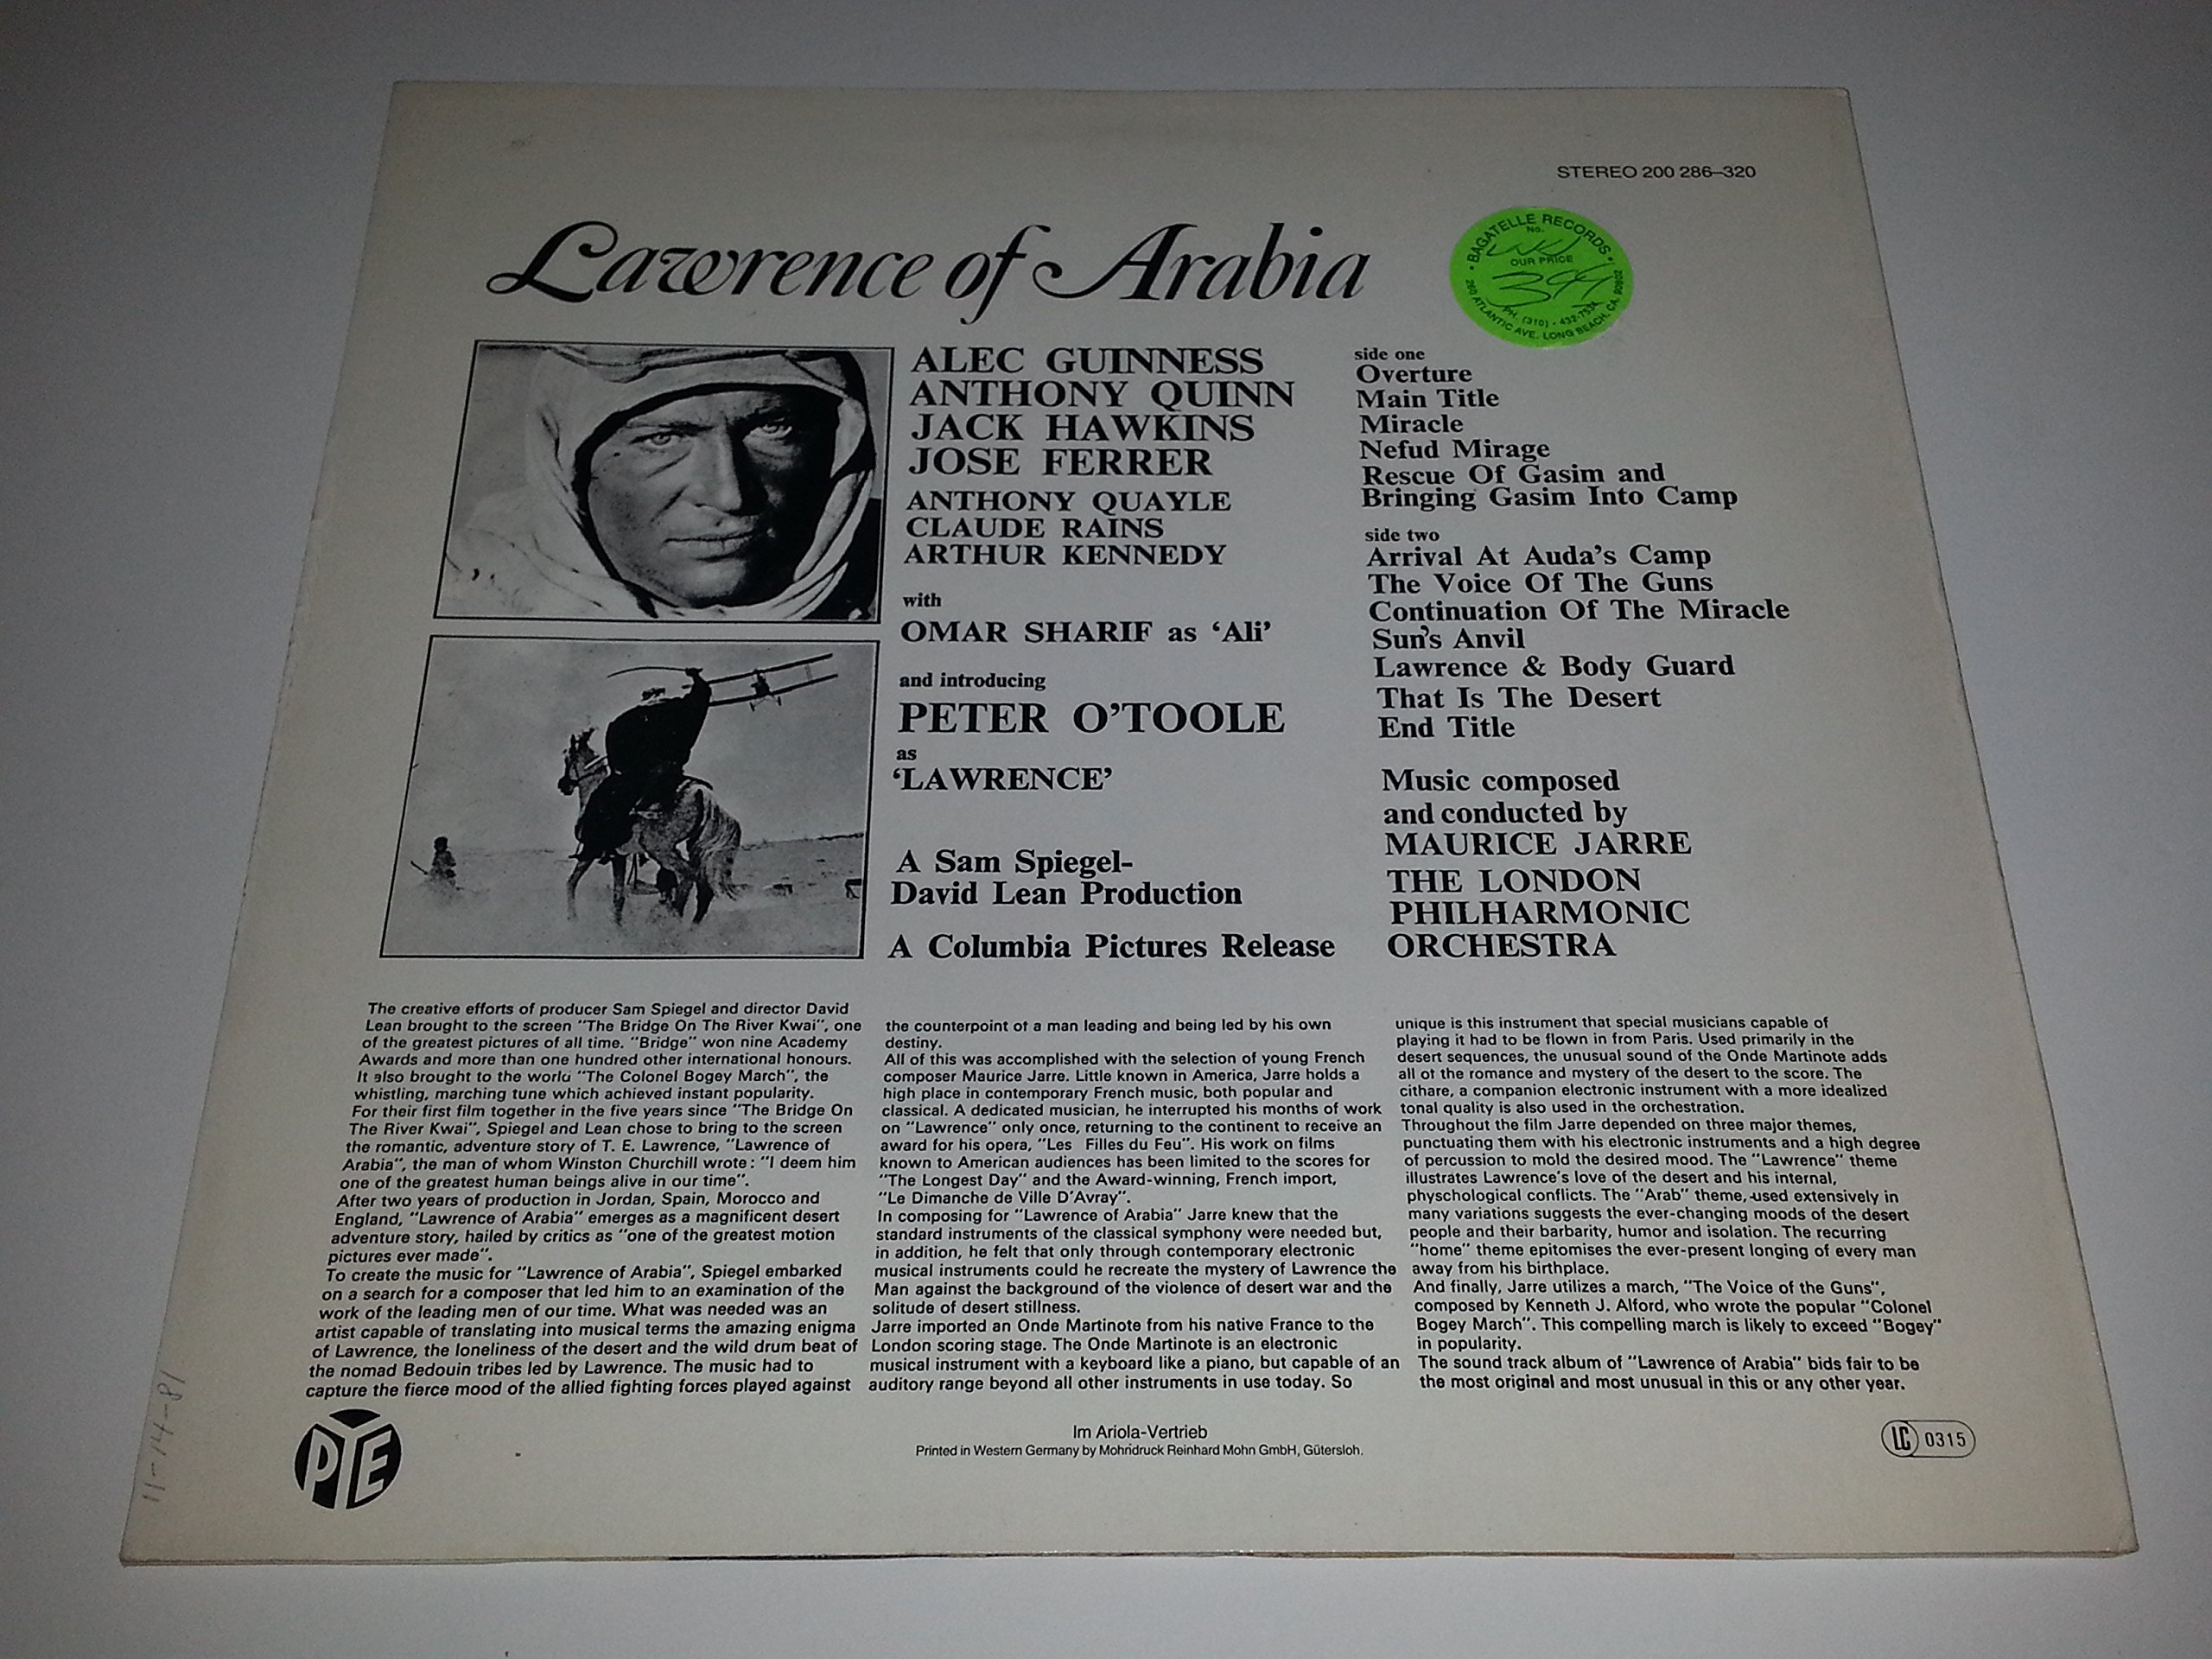 Lawrence of Arabia - Original Soundtrack Recording by Colpix Records